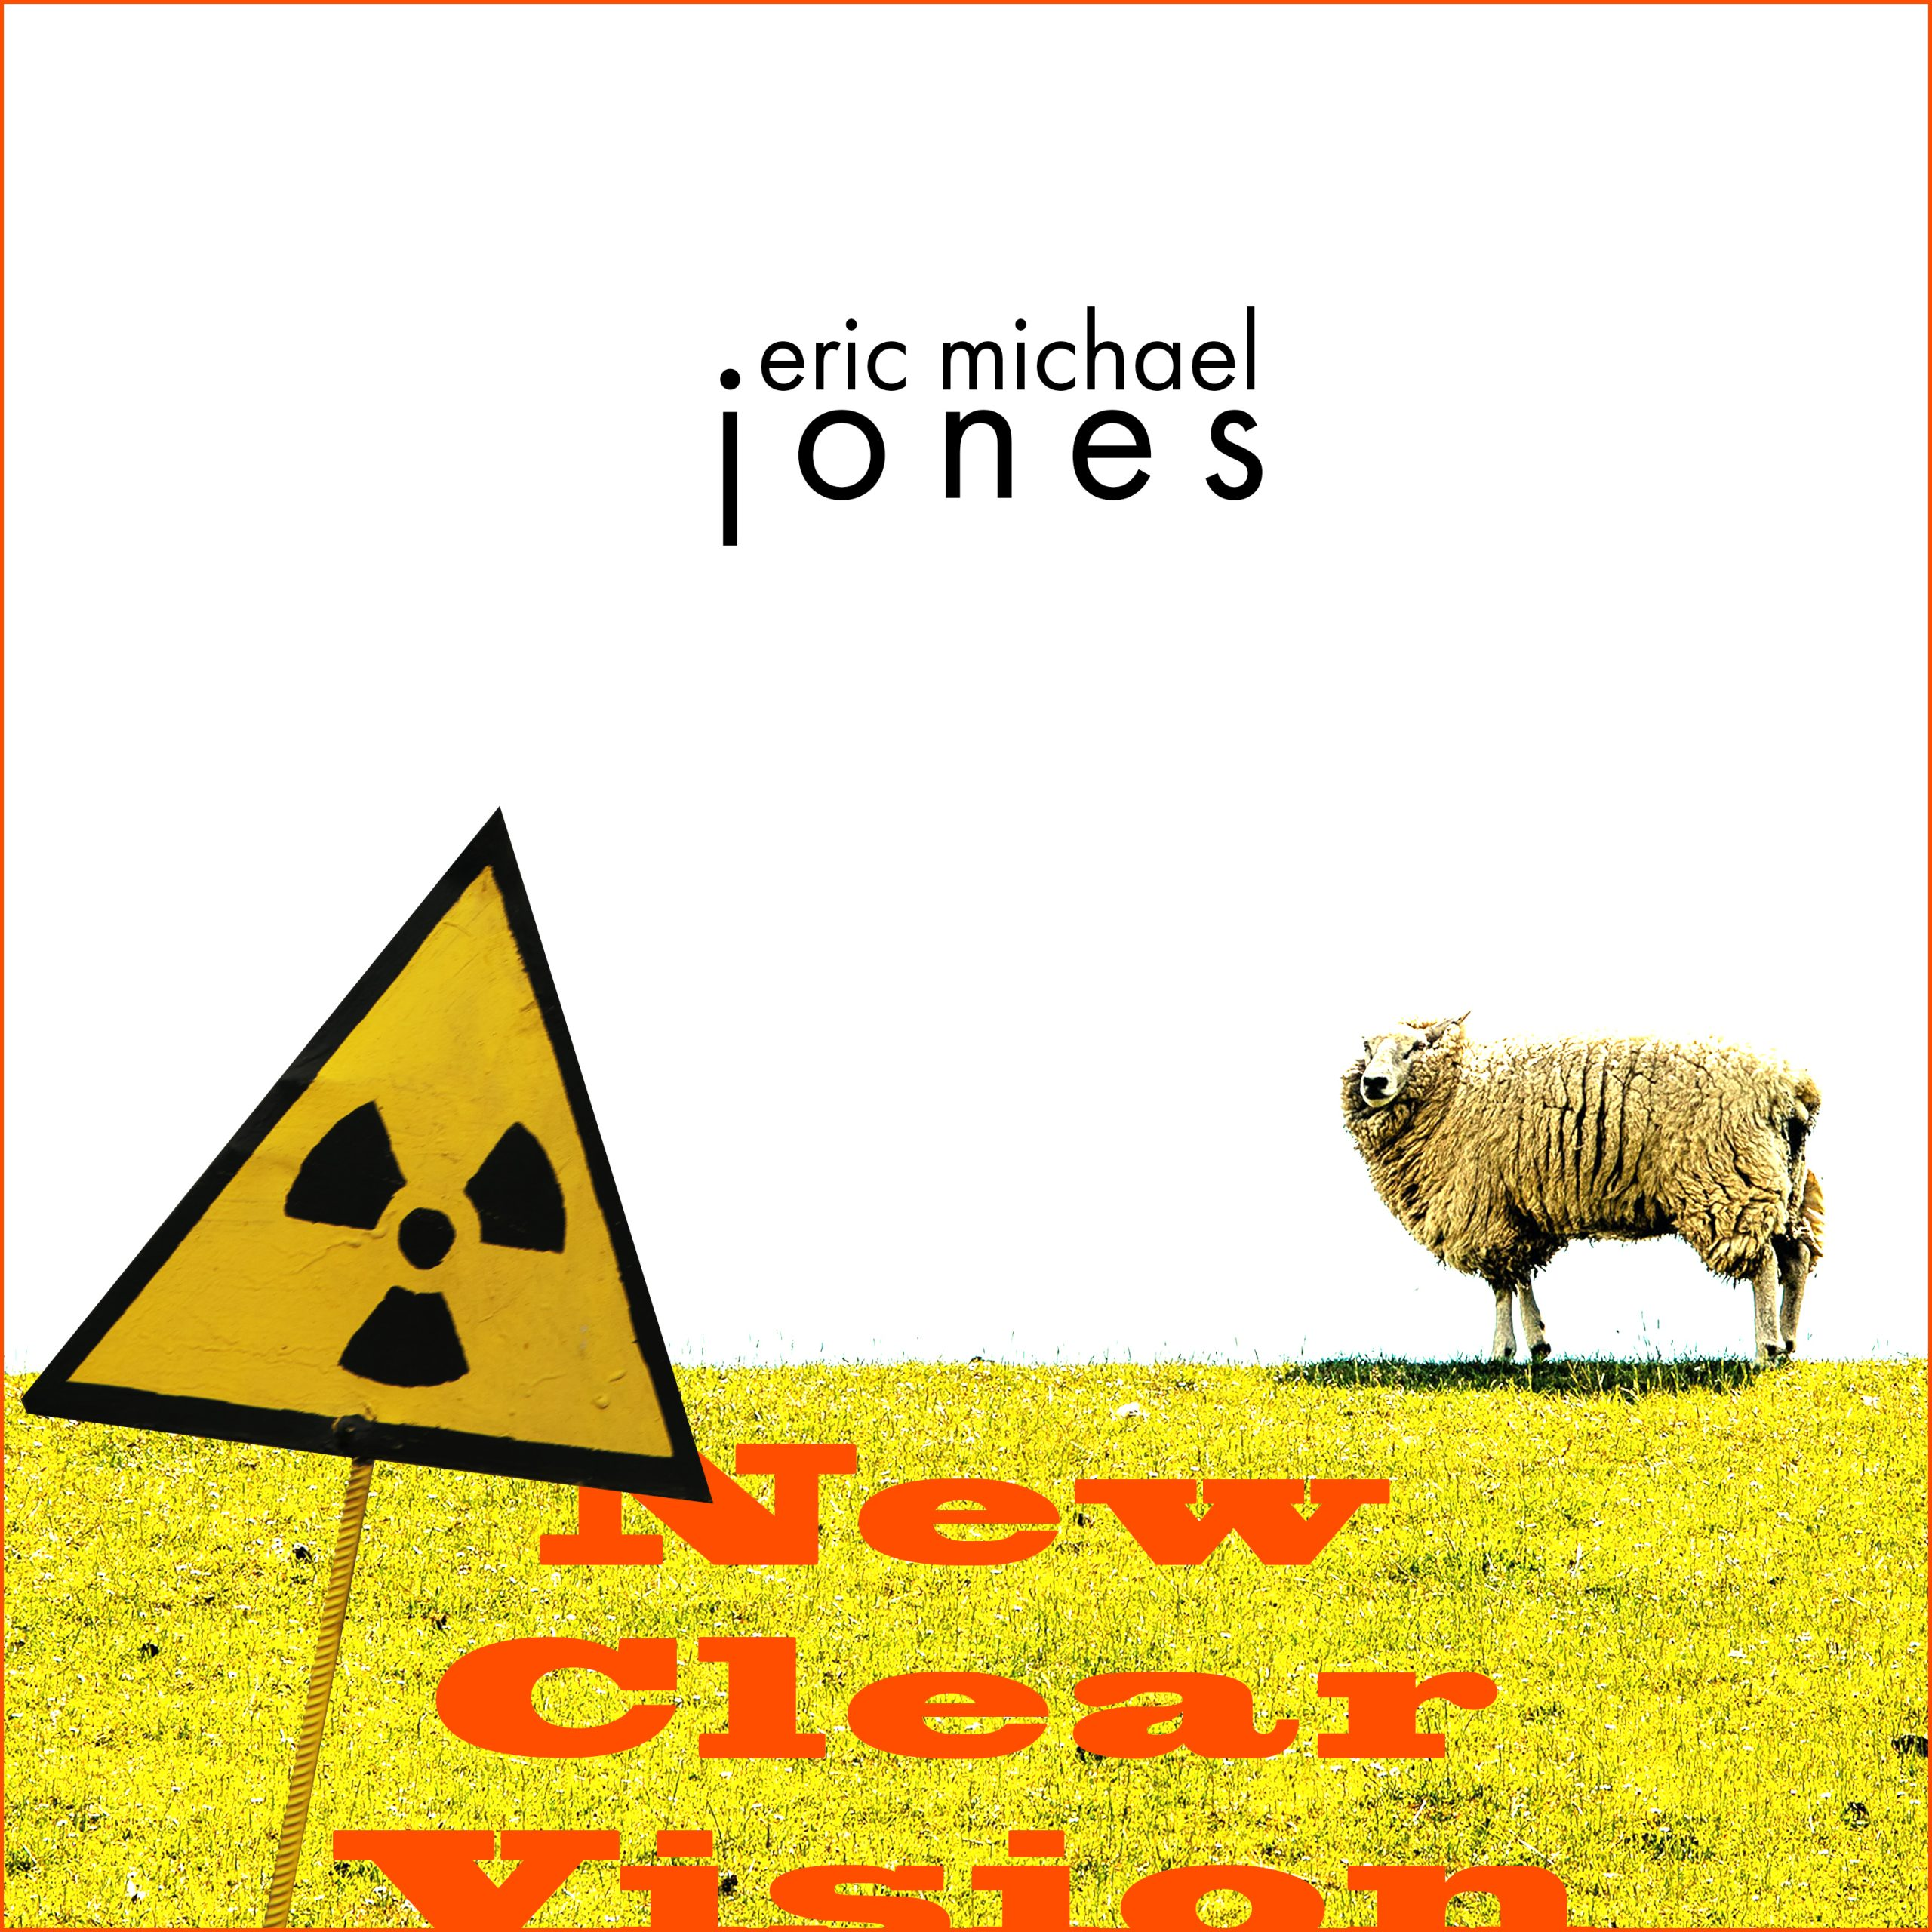 Cover art for New Clear Vision, showing a sheep against a white background with a radiation warning sign in the foreground